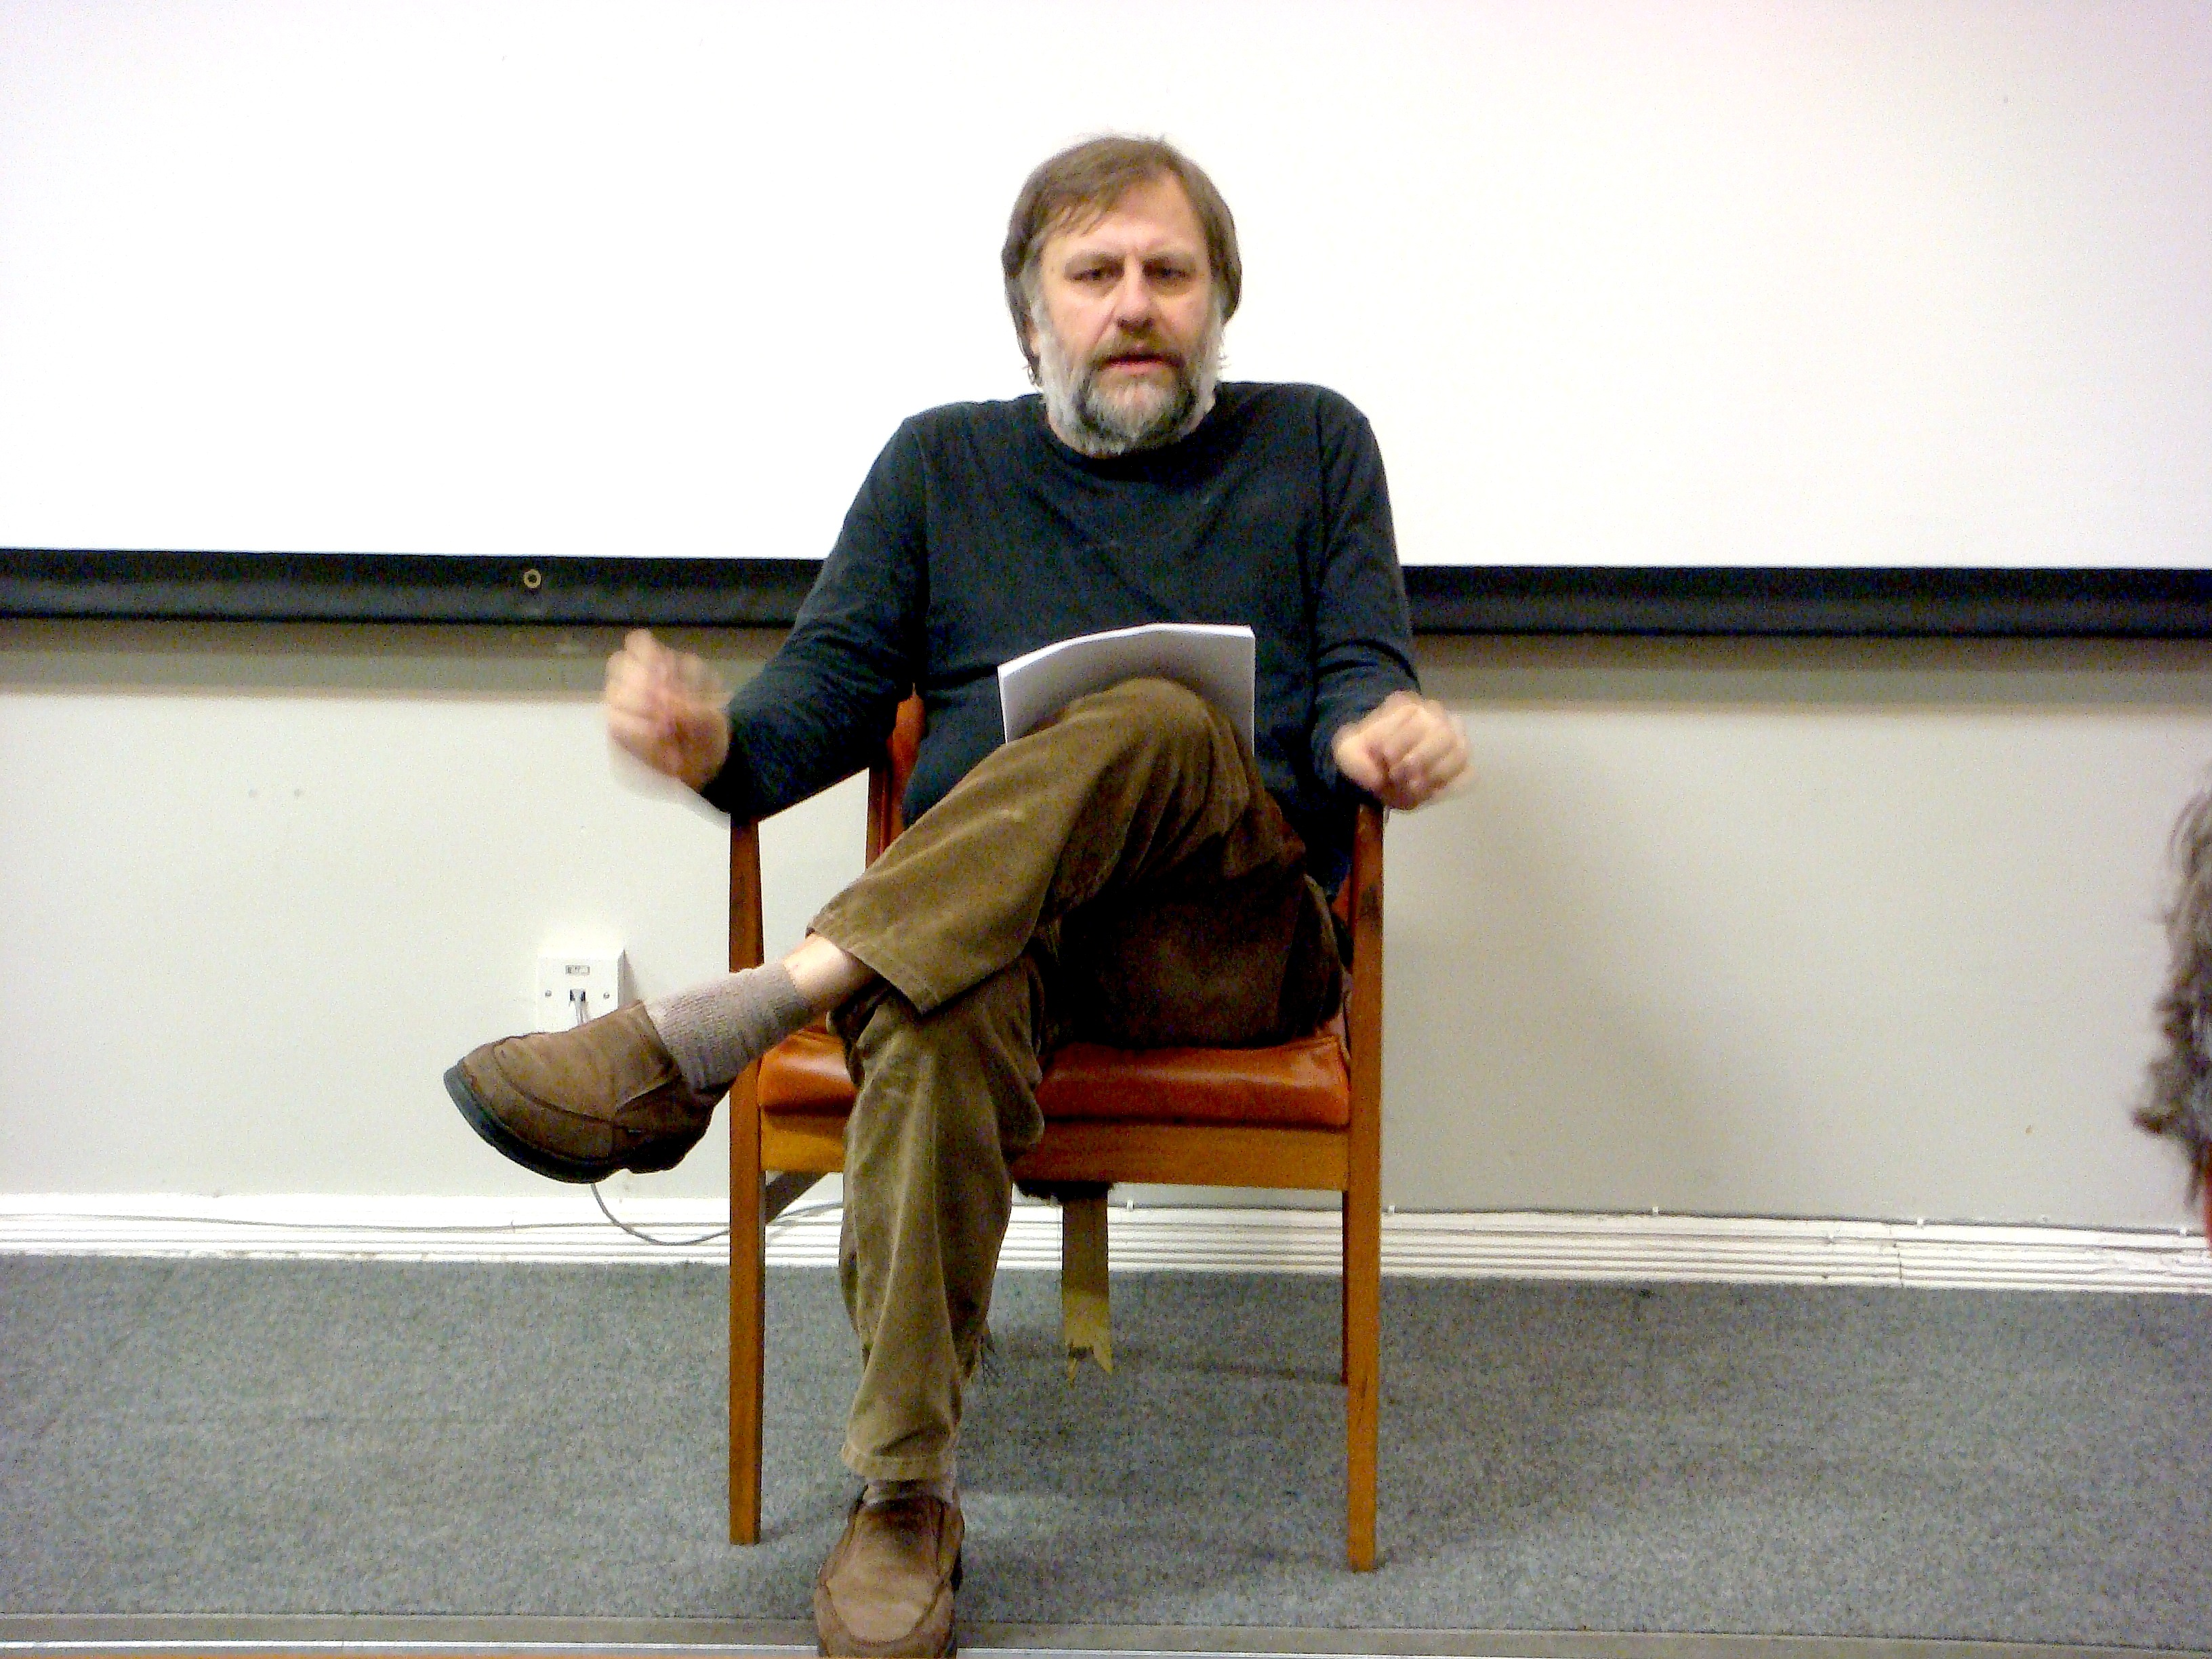 https://i2.wp.com/upload.wikimedia.org/wikipedia/commons/a/ac/Slavoj_Zizek_in_Liverpool.jpg